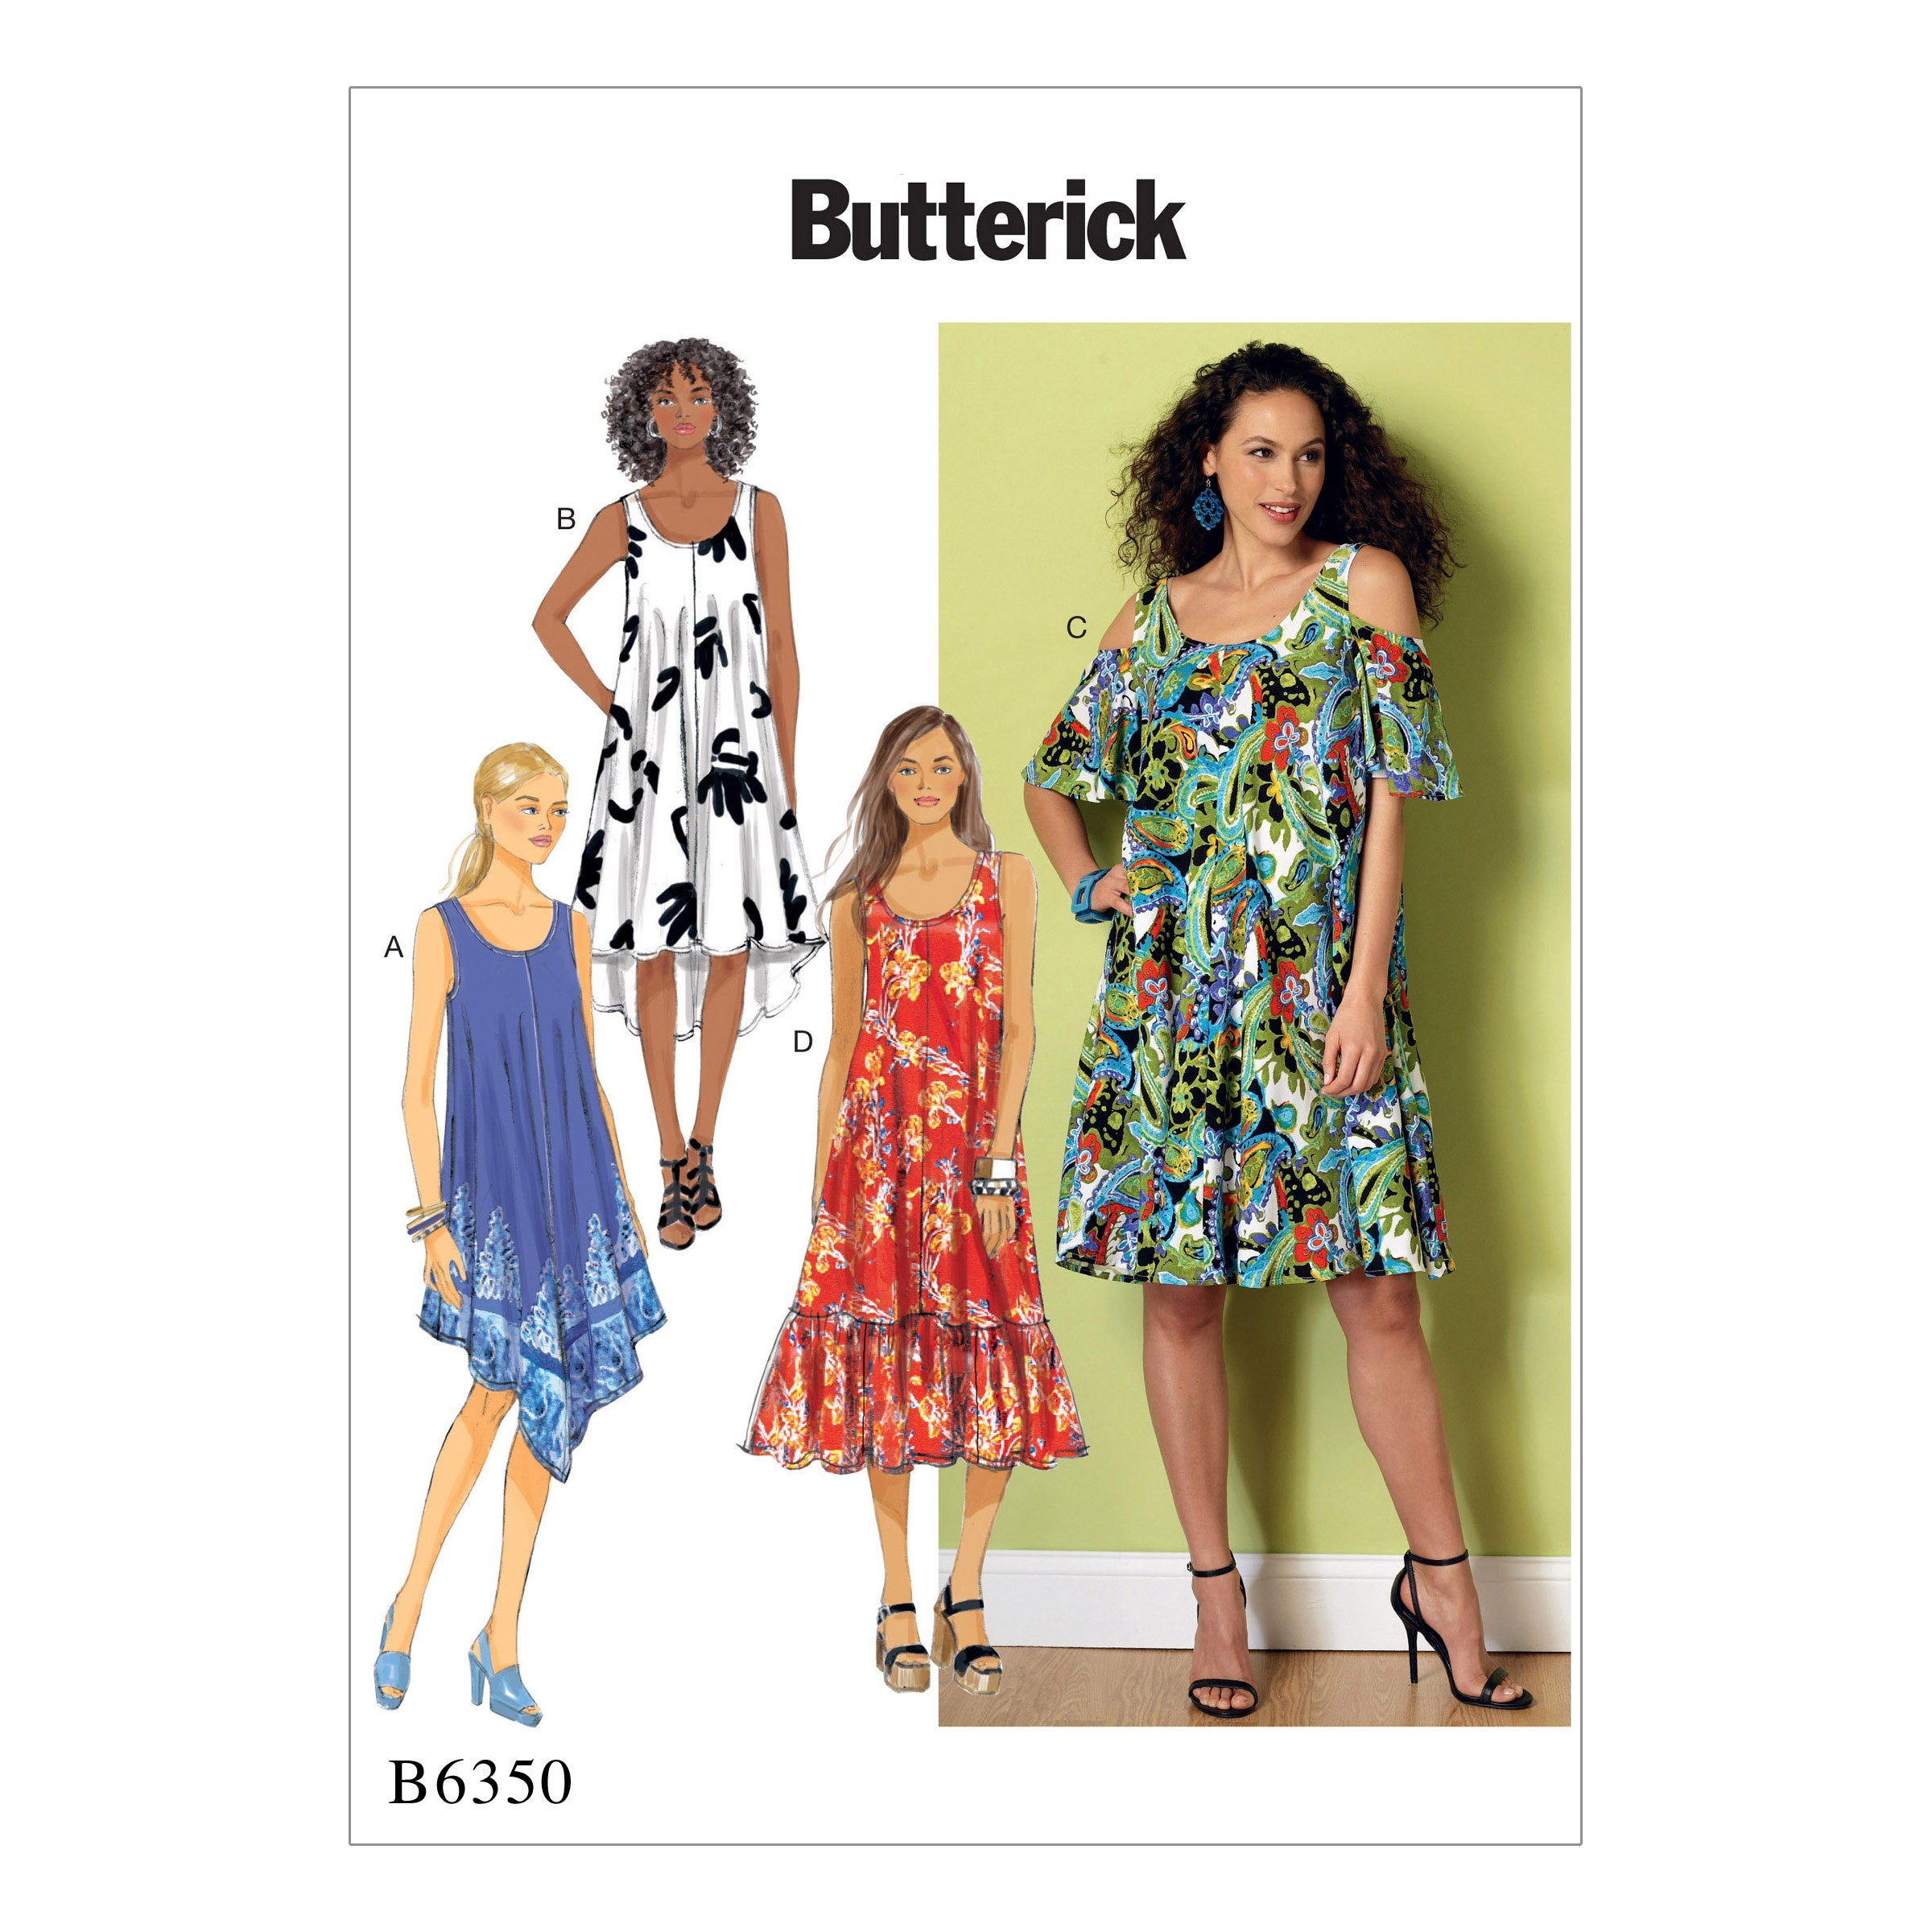 Butterick Sewing Pattern 6350 Misses' Sleeveless & Cold Shoulder Dresses